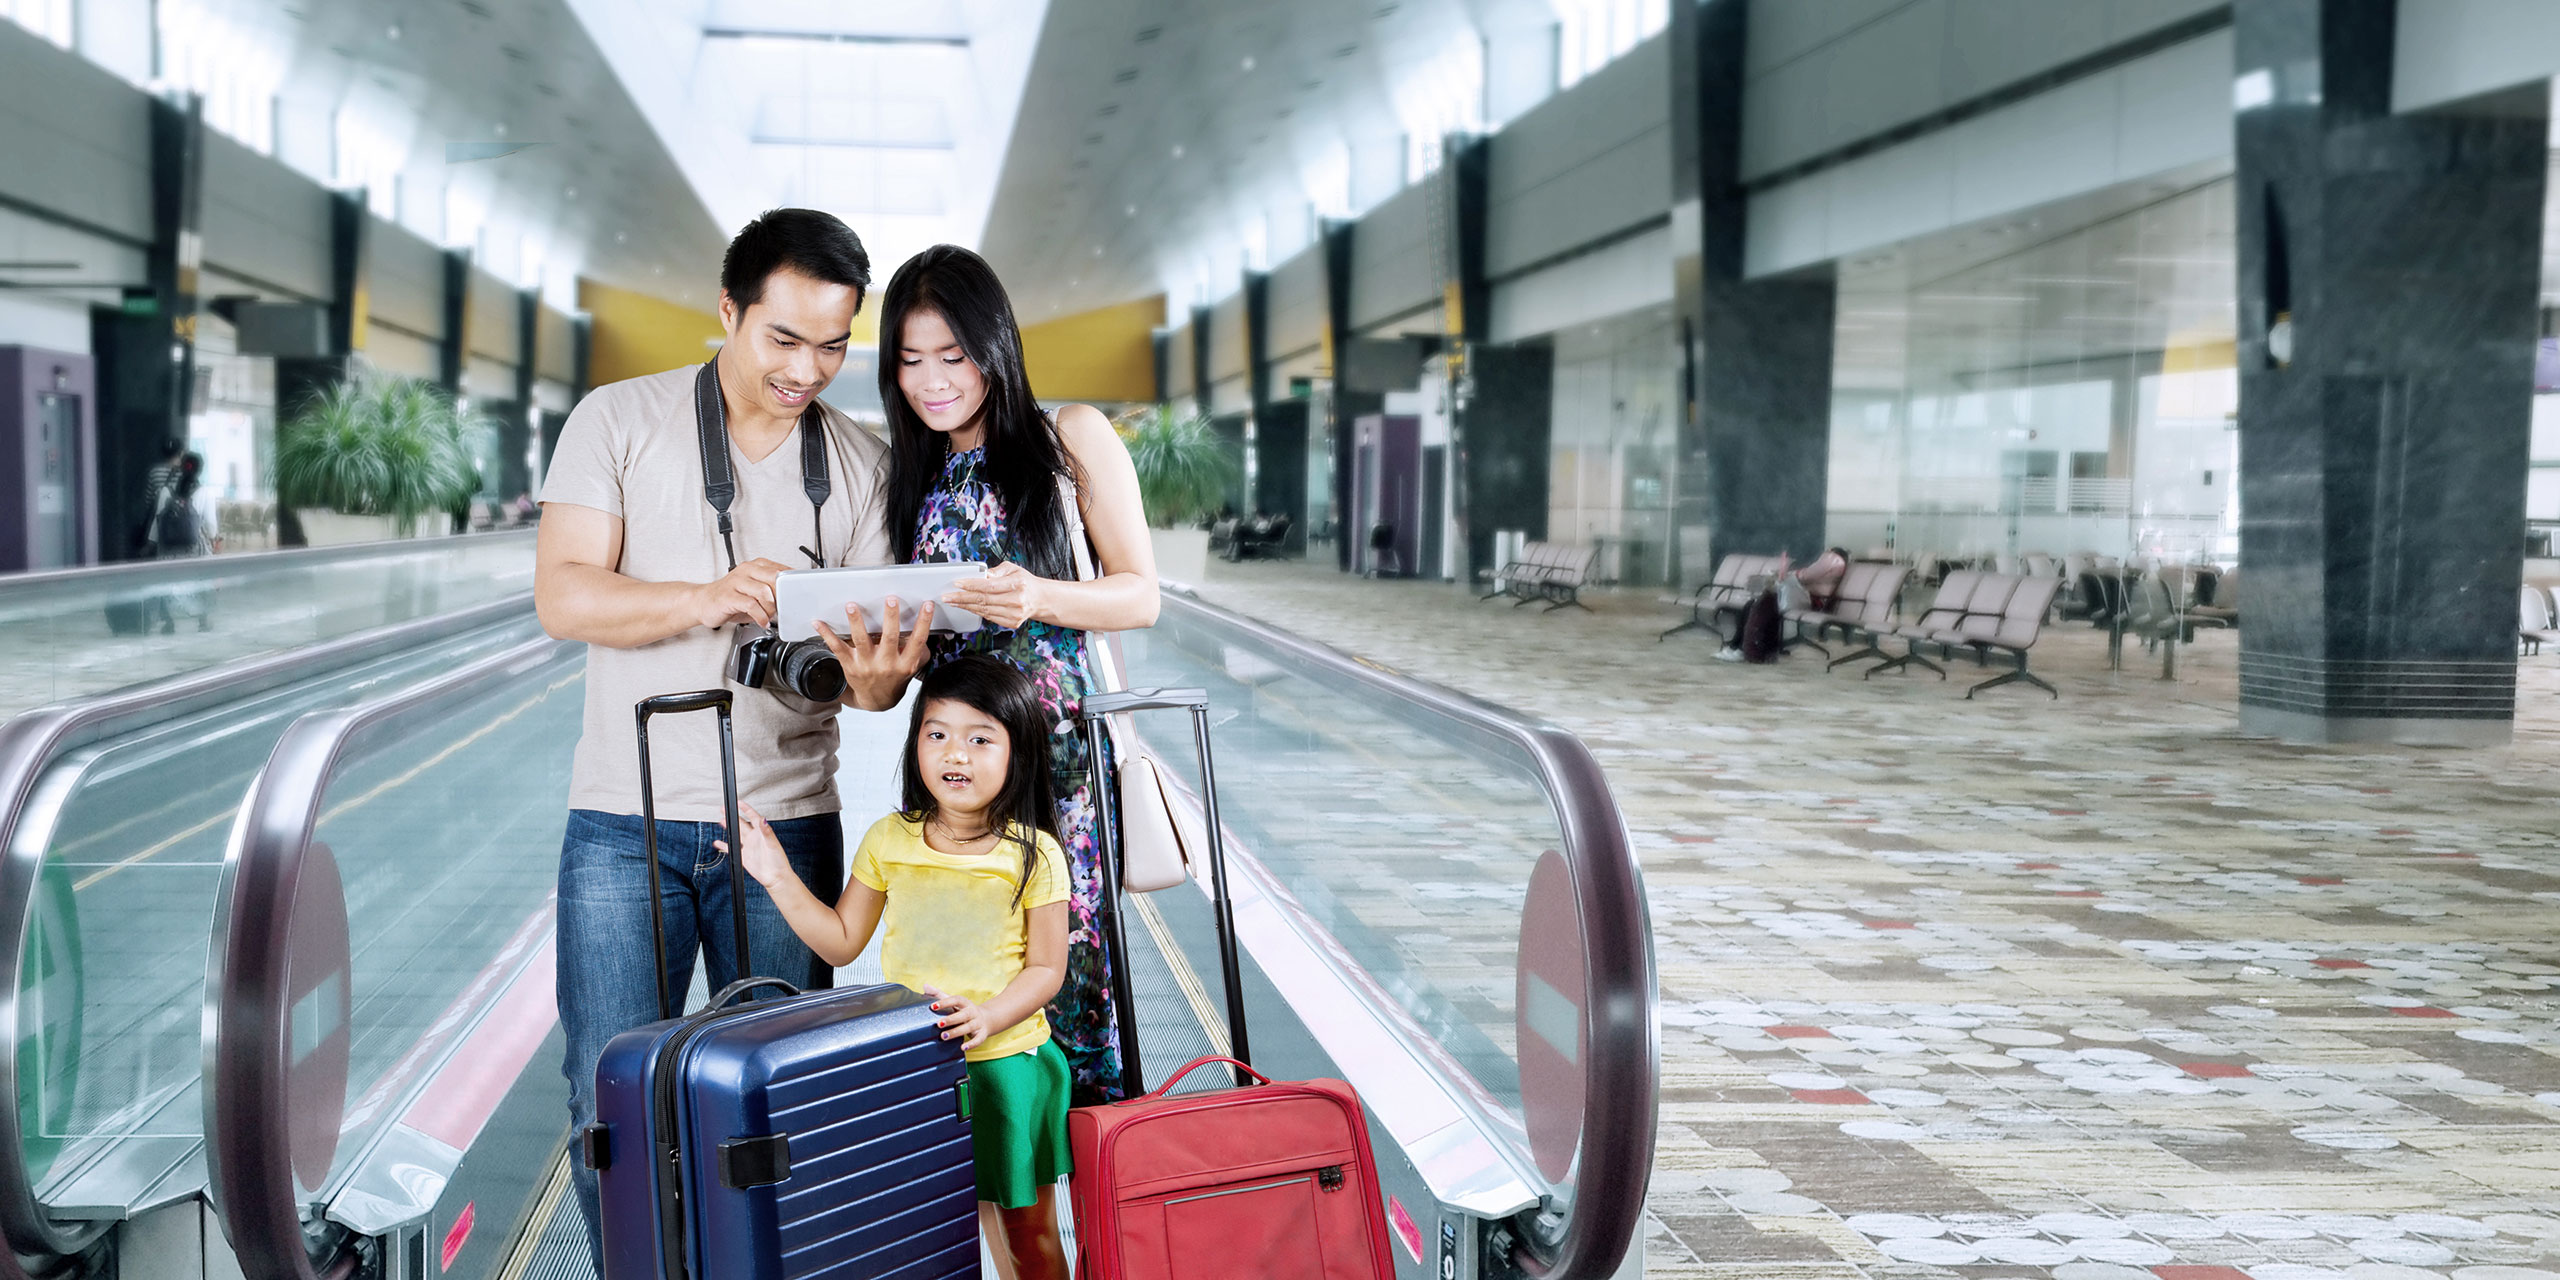 Asian Family at Airport: Courtesy of Creativa Images/Shutterstock.com